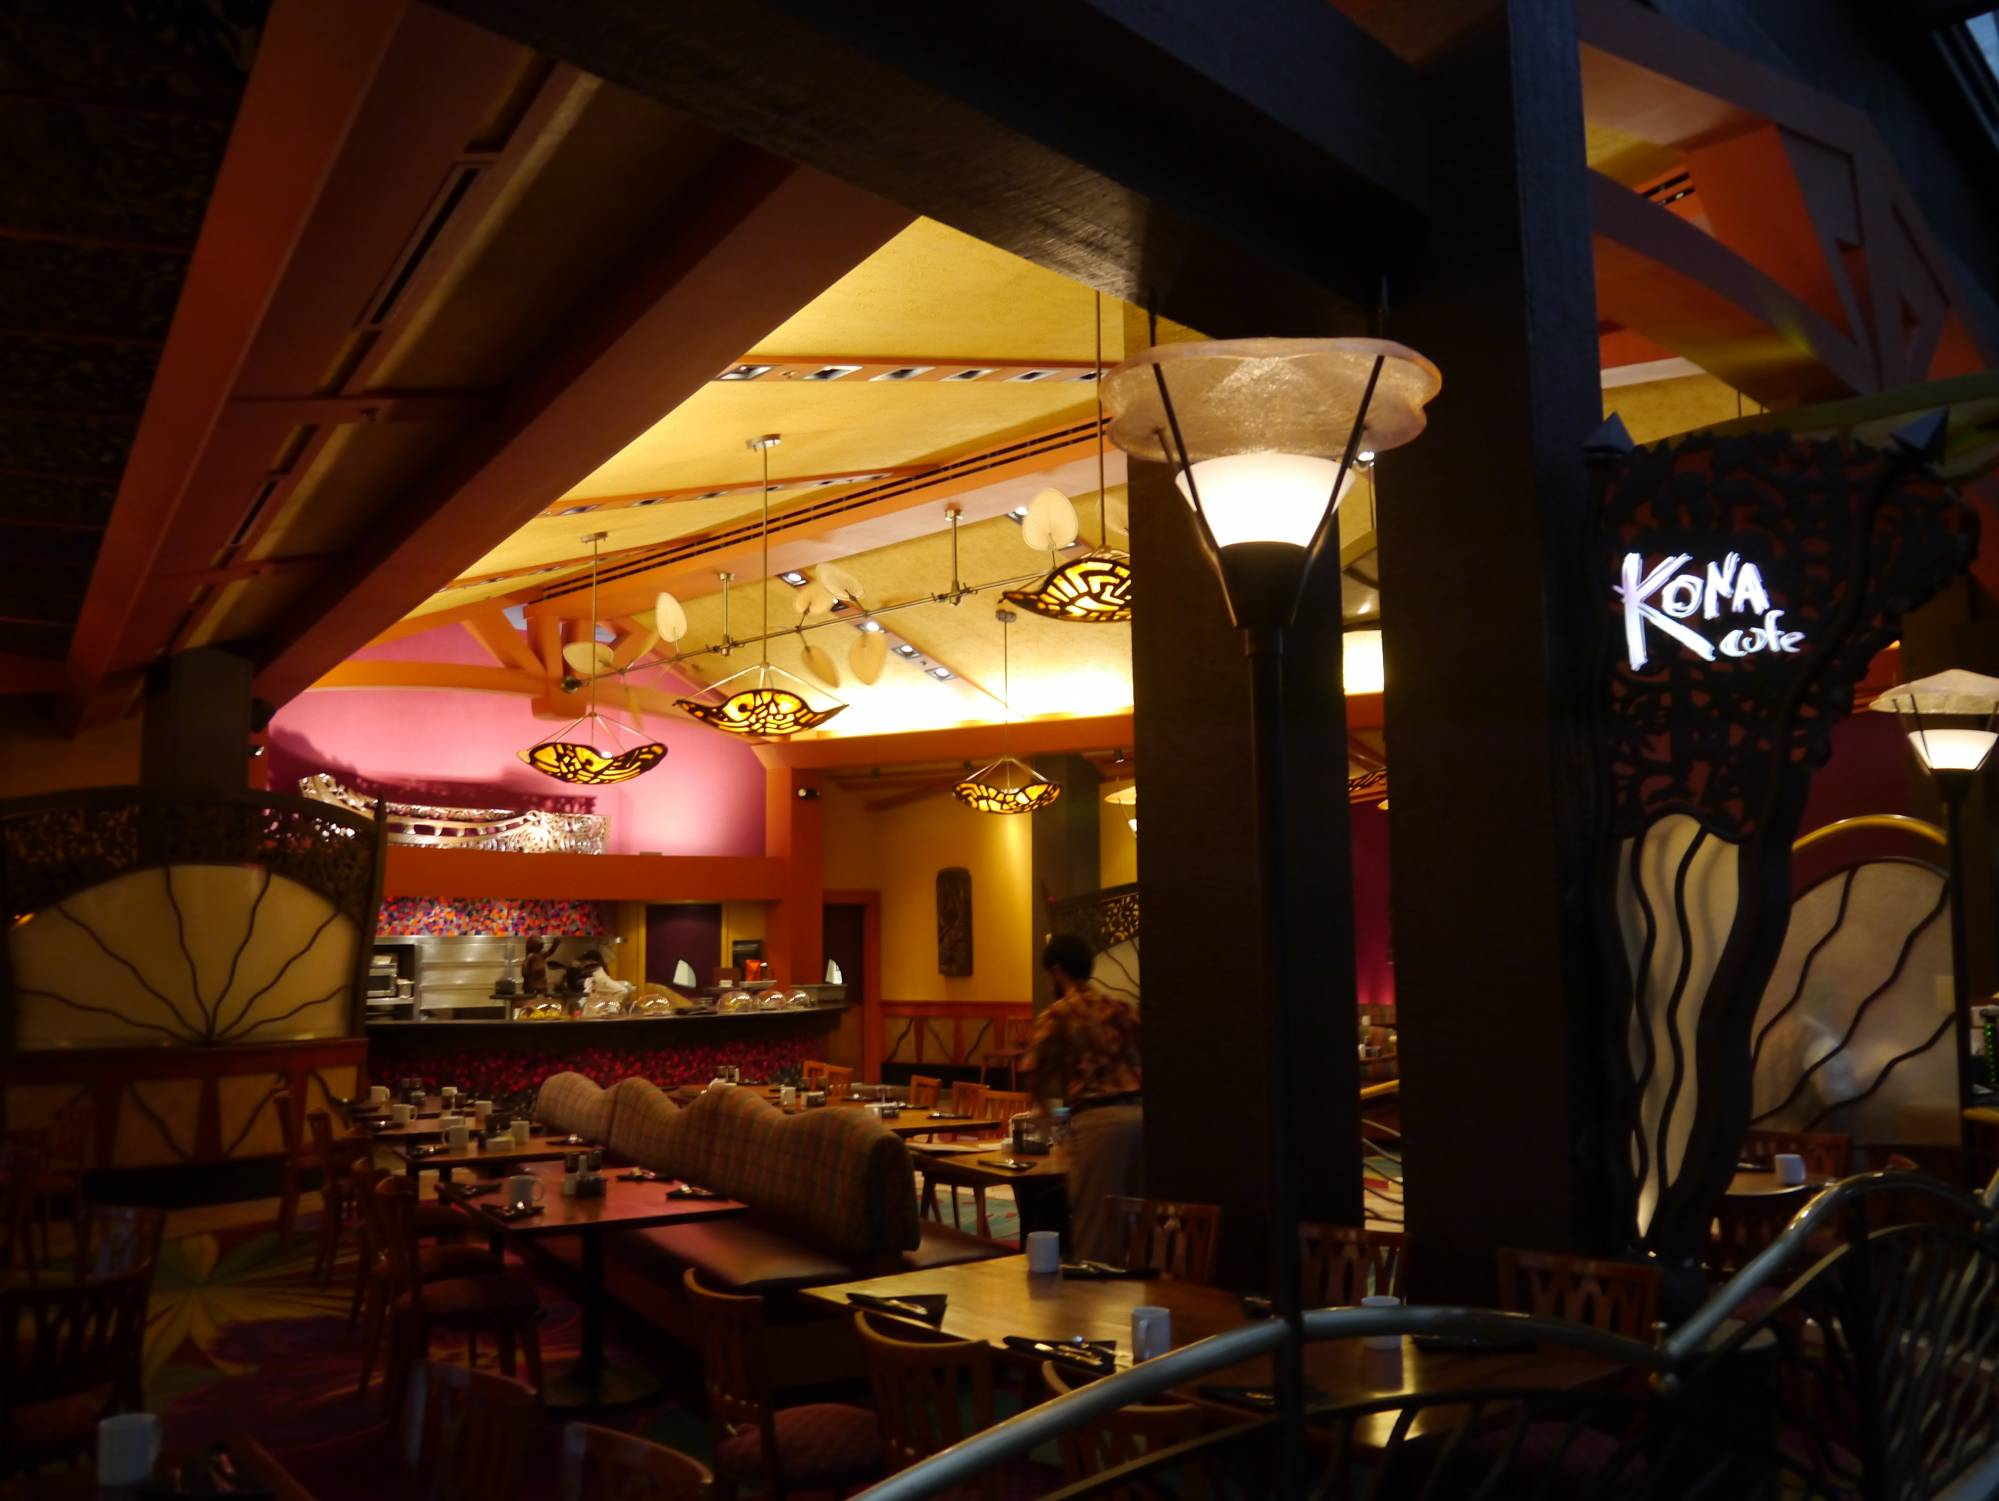 Enjoy dinner at the Kona Cafe at Disney's Polynesian Village Resort |PassPorter.com